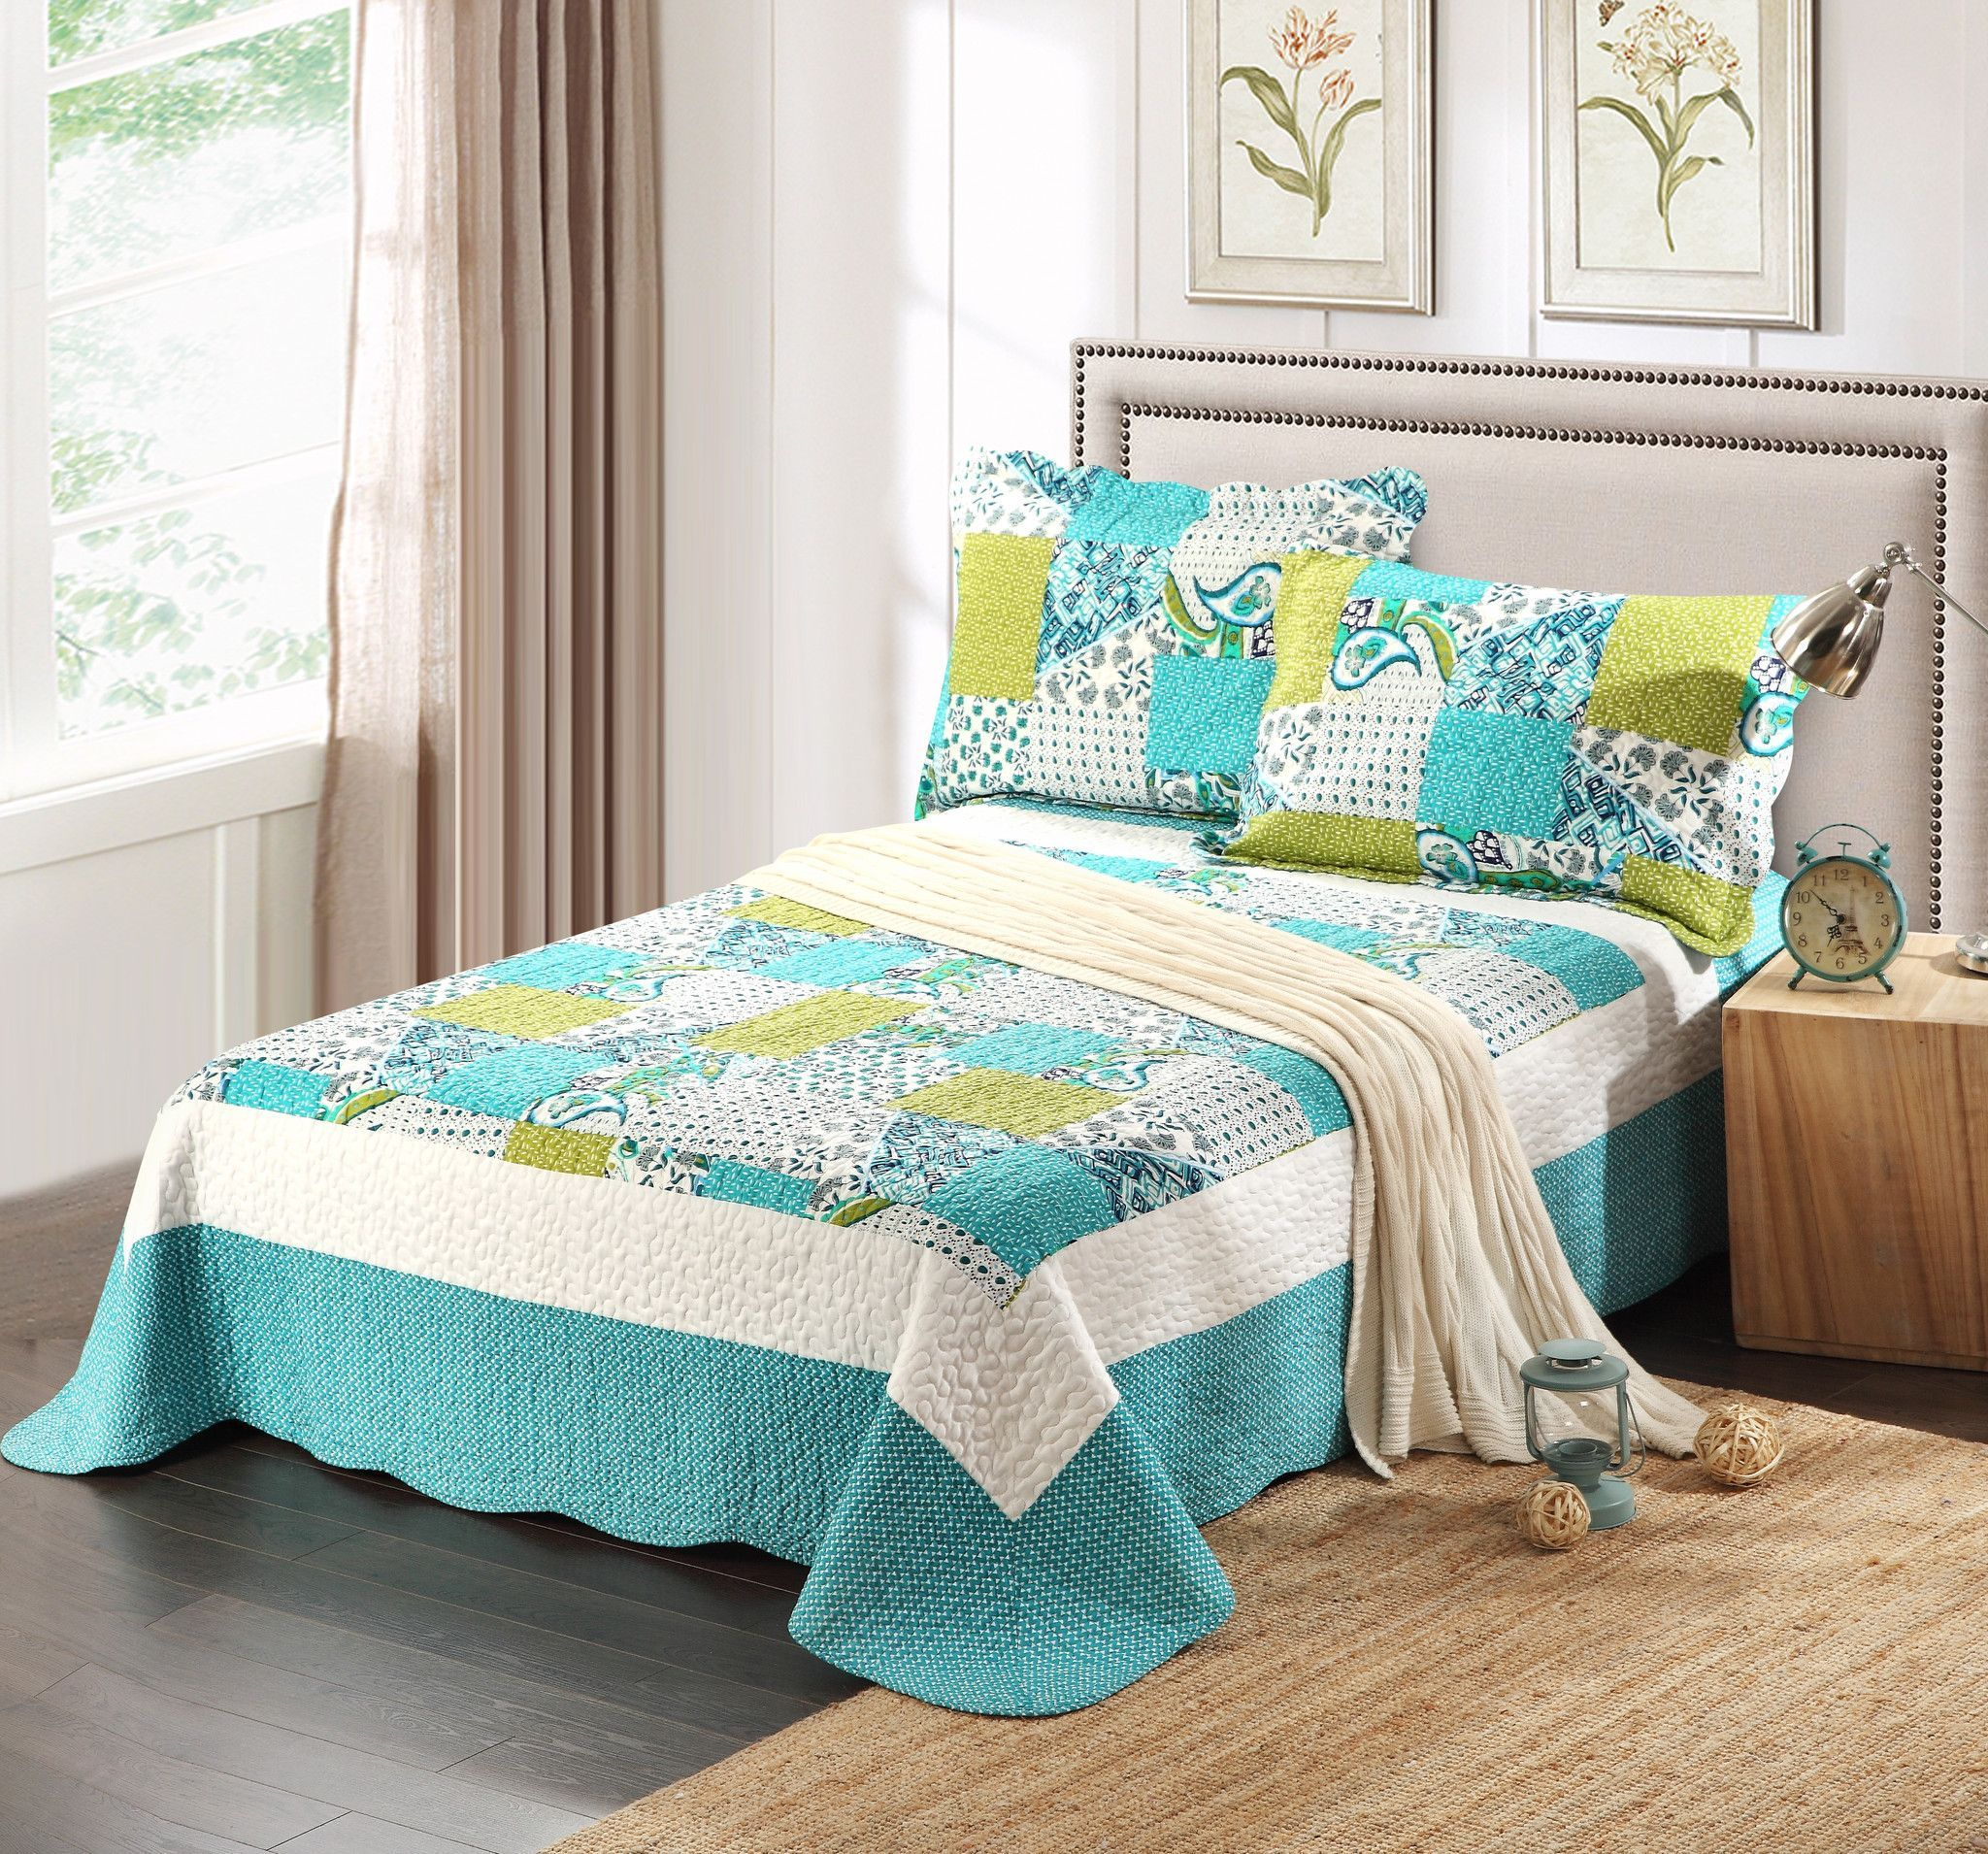 for chic with bedding frame quilt california king comfy bedroom design bed